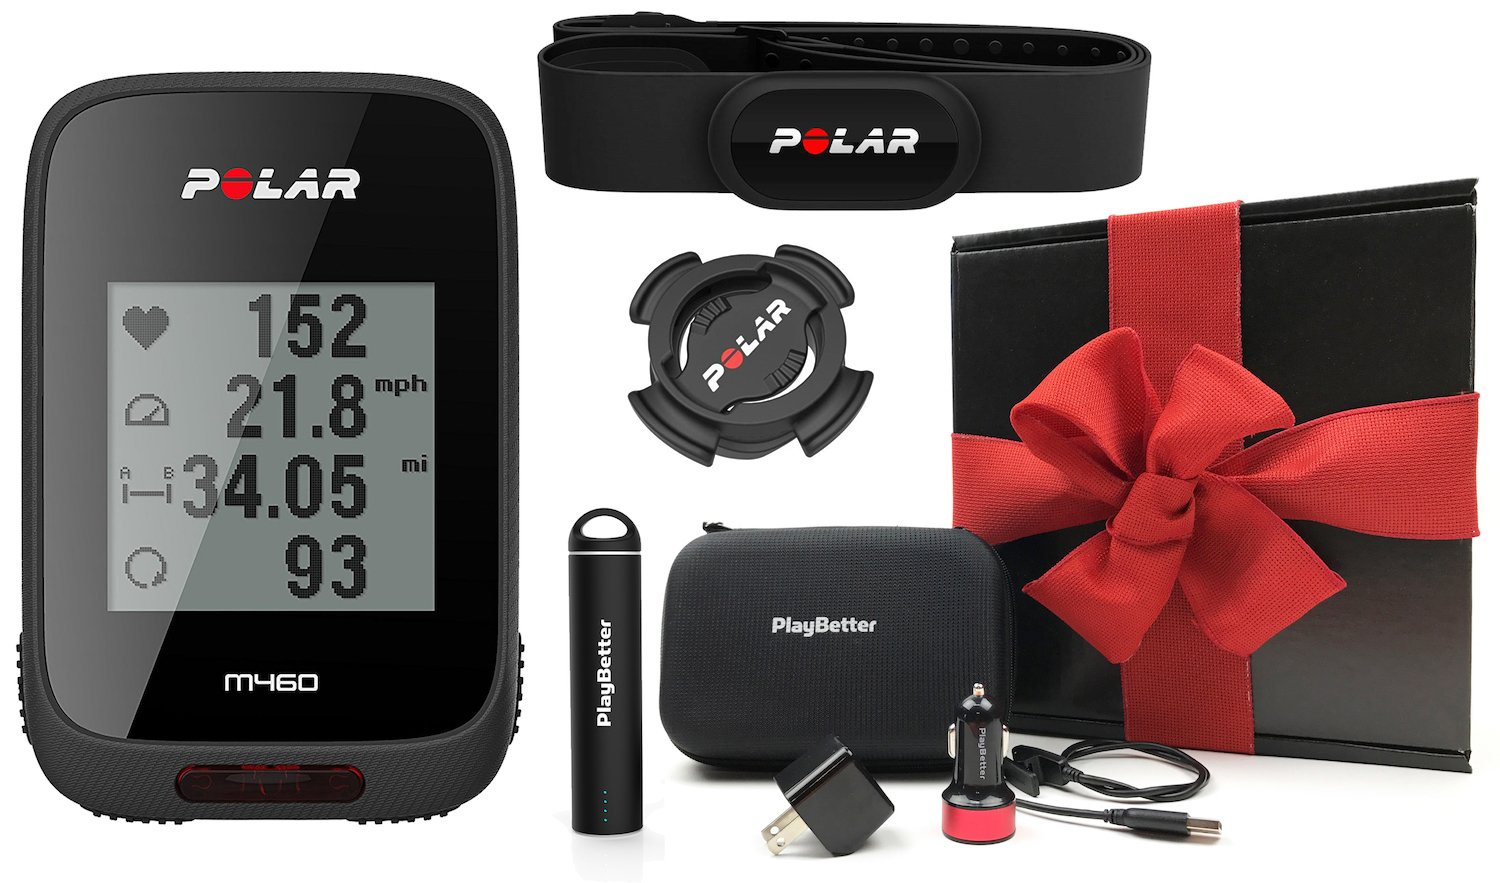 Polar M460 HRM Bundle GIFT BOX | Includes Polar Chest Strap HRM, PlayBetter Portable Charger, USB Car/Wall Adapters, Hard Carrying Case & Bike Mount | Strava Live Segments | Black Gift Box, Red Bow